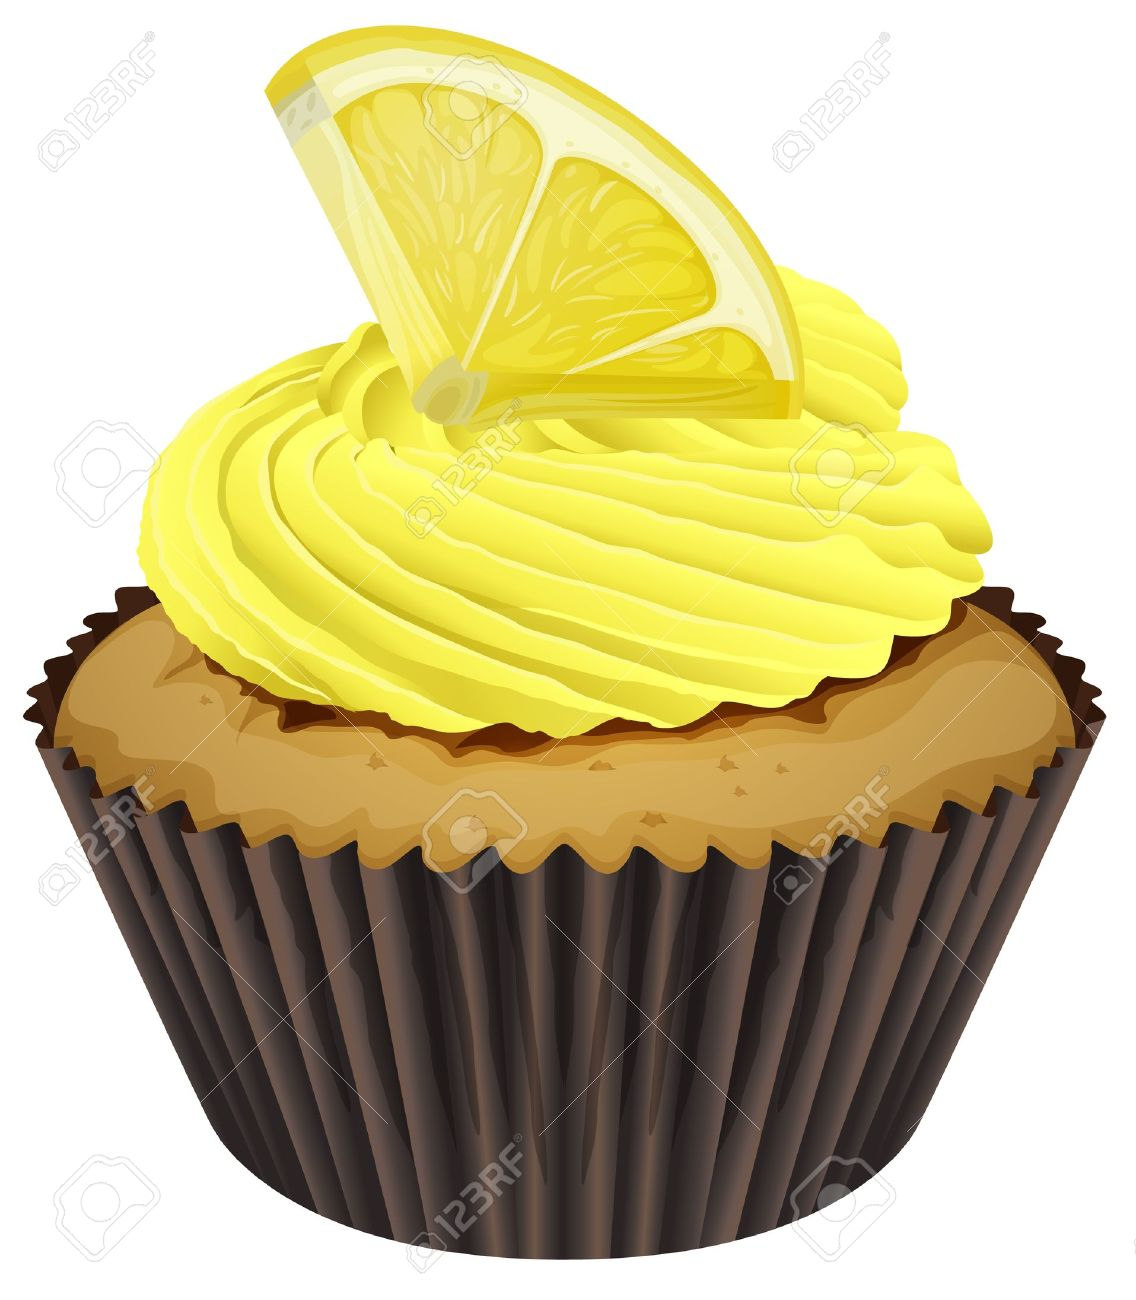 illustration of a cupcake on a white background Stock Vector - 16188261